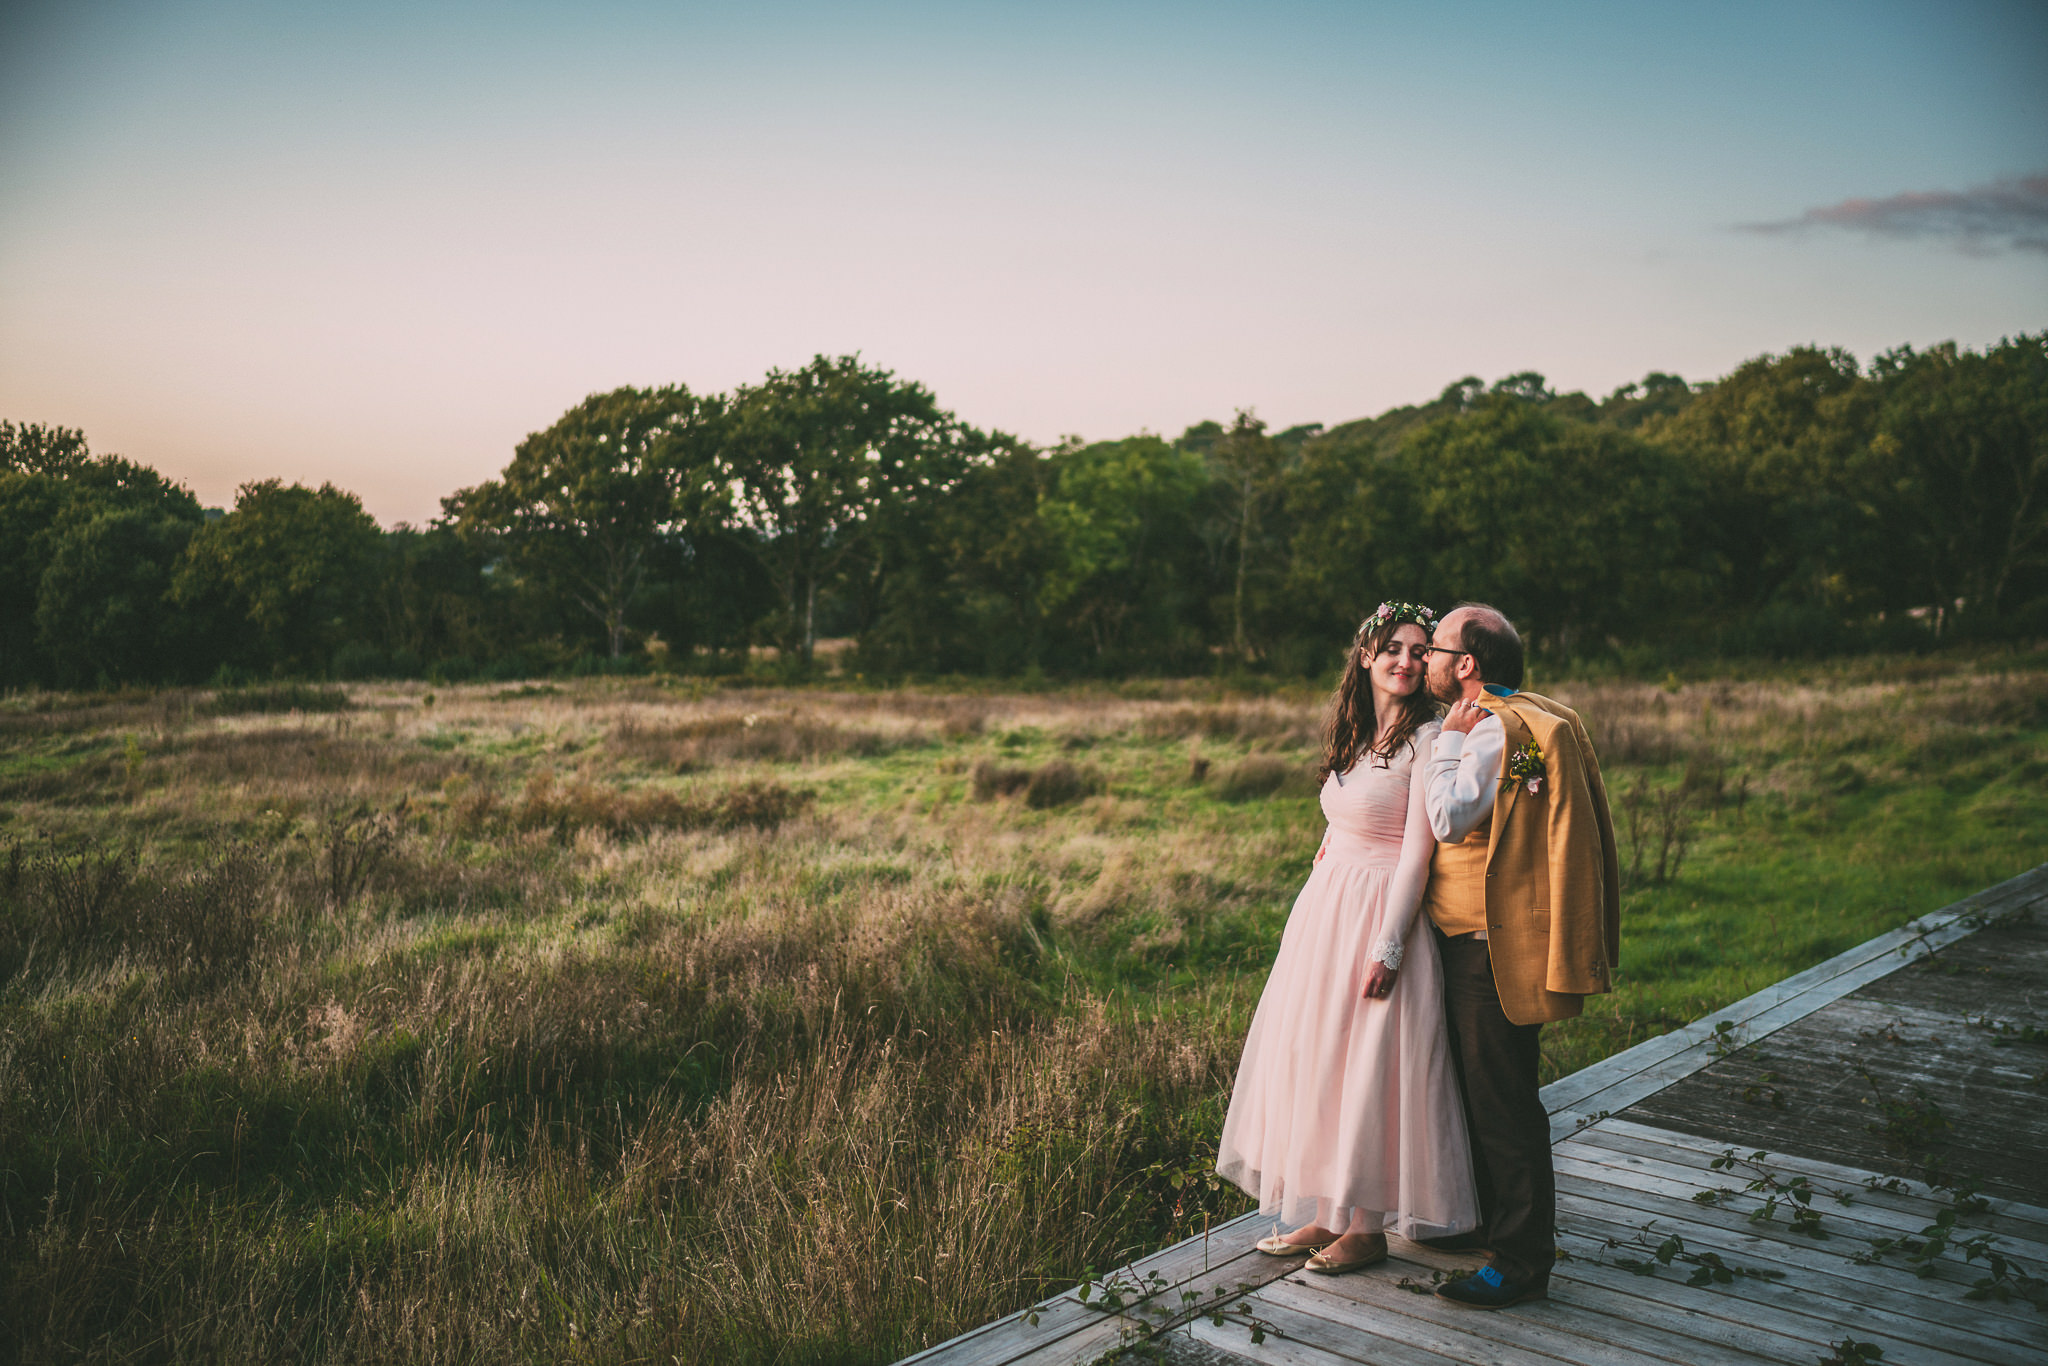 paul-marbrook-Fforest-Wedding-Photographer-90085